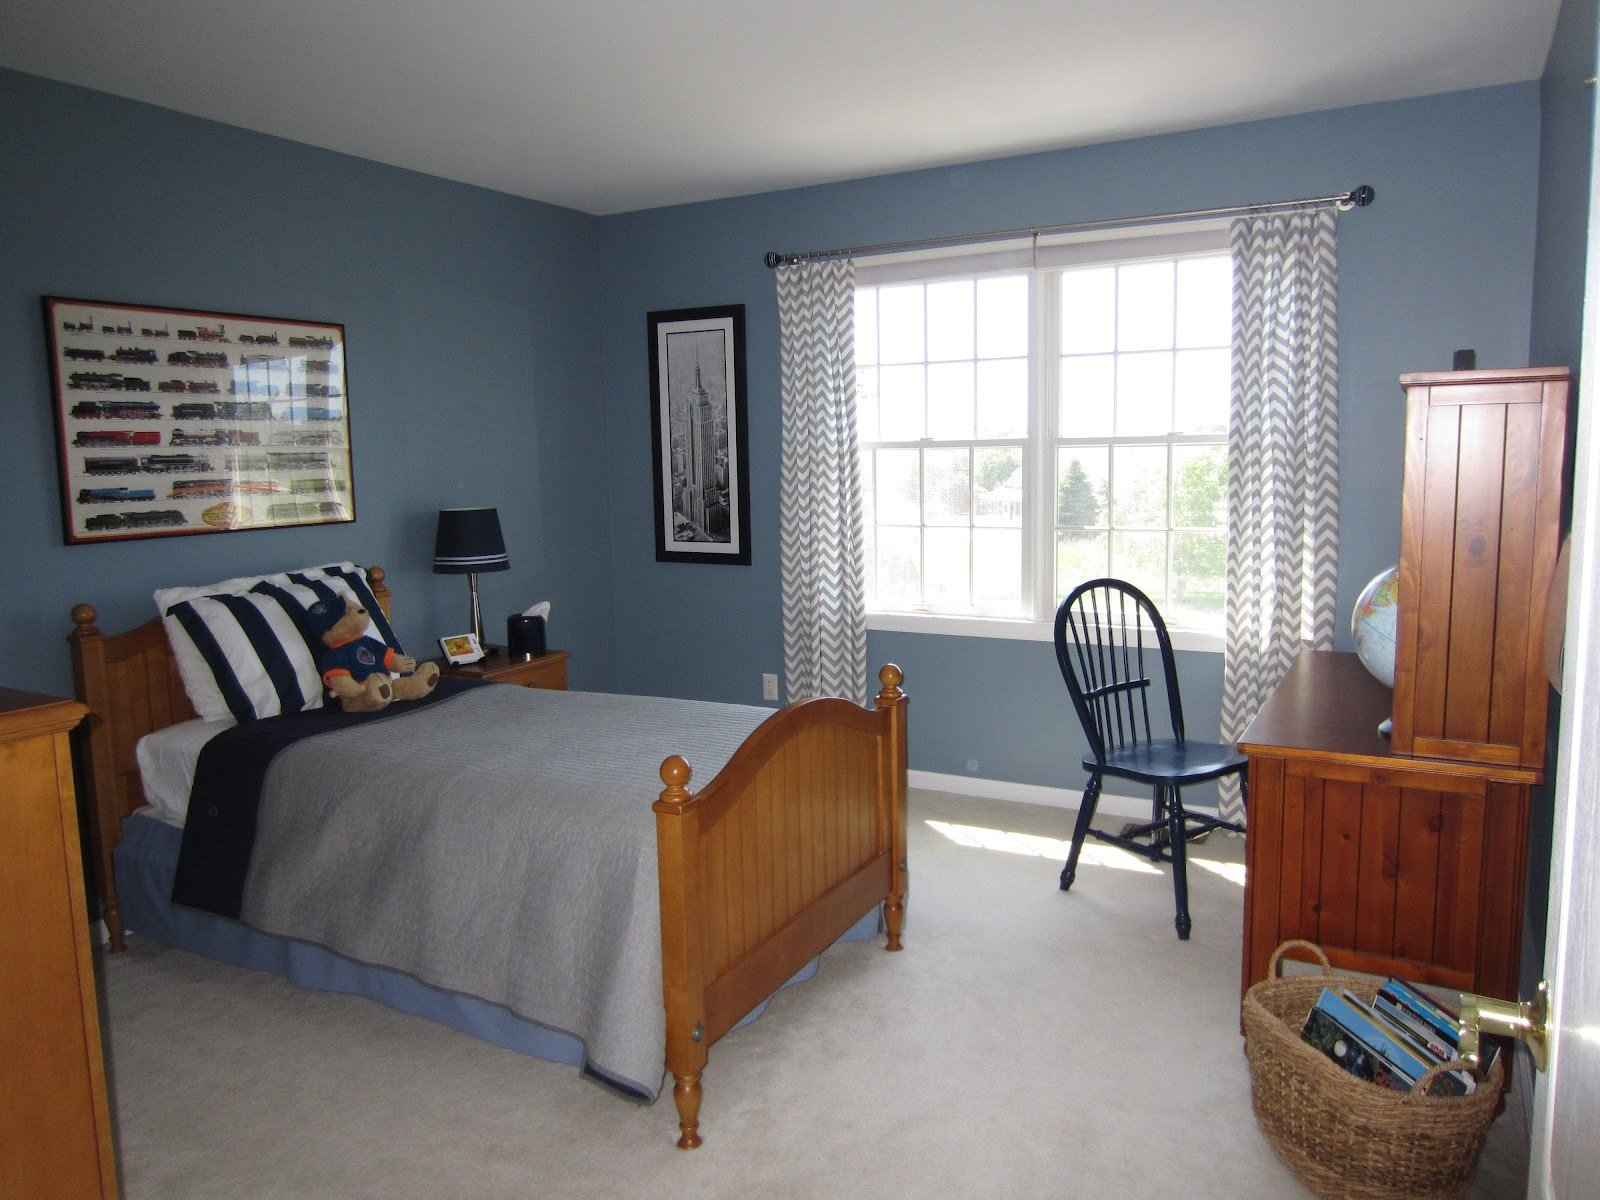 Best Dark Blue Country Boys Bedroom 1442 Latest Decoration Ideas With Pictures